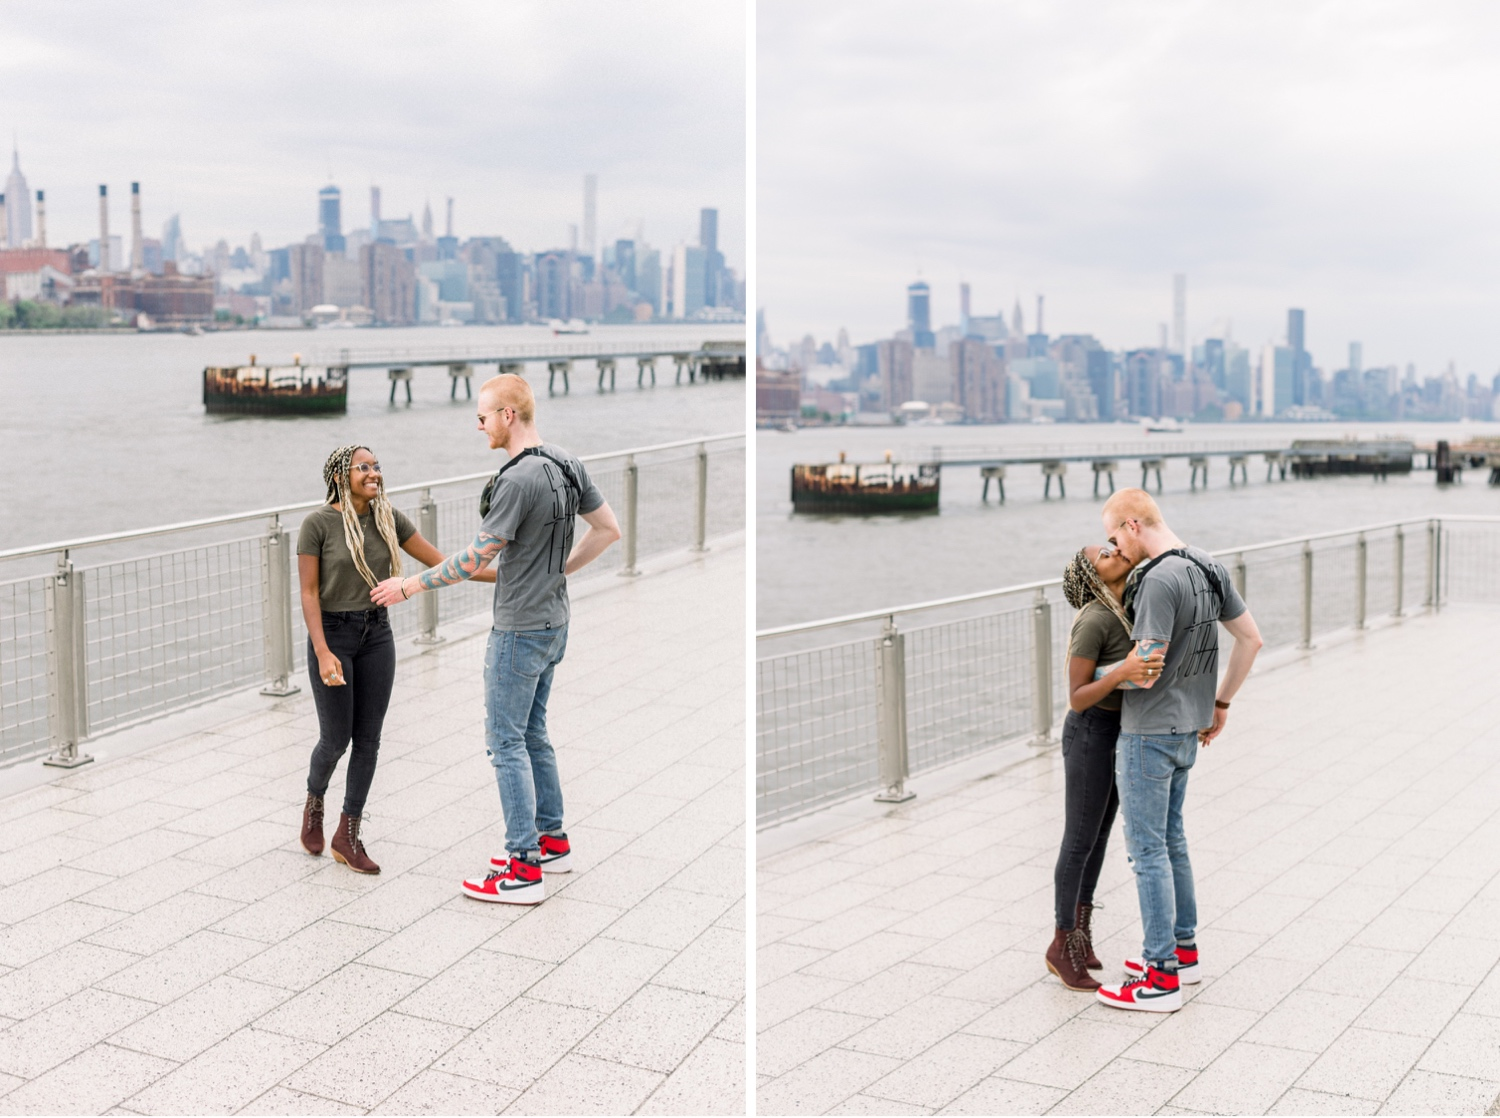 Williamsburg Wedding Photographer, Natura Collective, Interracial Couples Session, Interracial Relationships, Interracial Engagement Session, Inclusive Wedding Photographers, LGBT Wedding Photographer, Brooklyn Gay Wedding Photographer, Williamsburg Couples Session